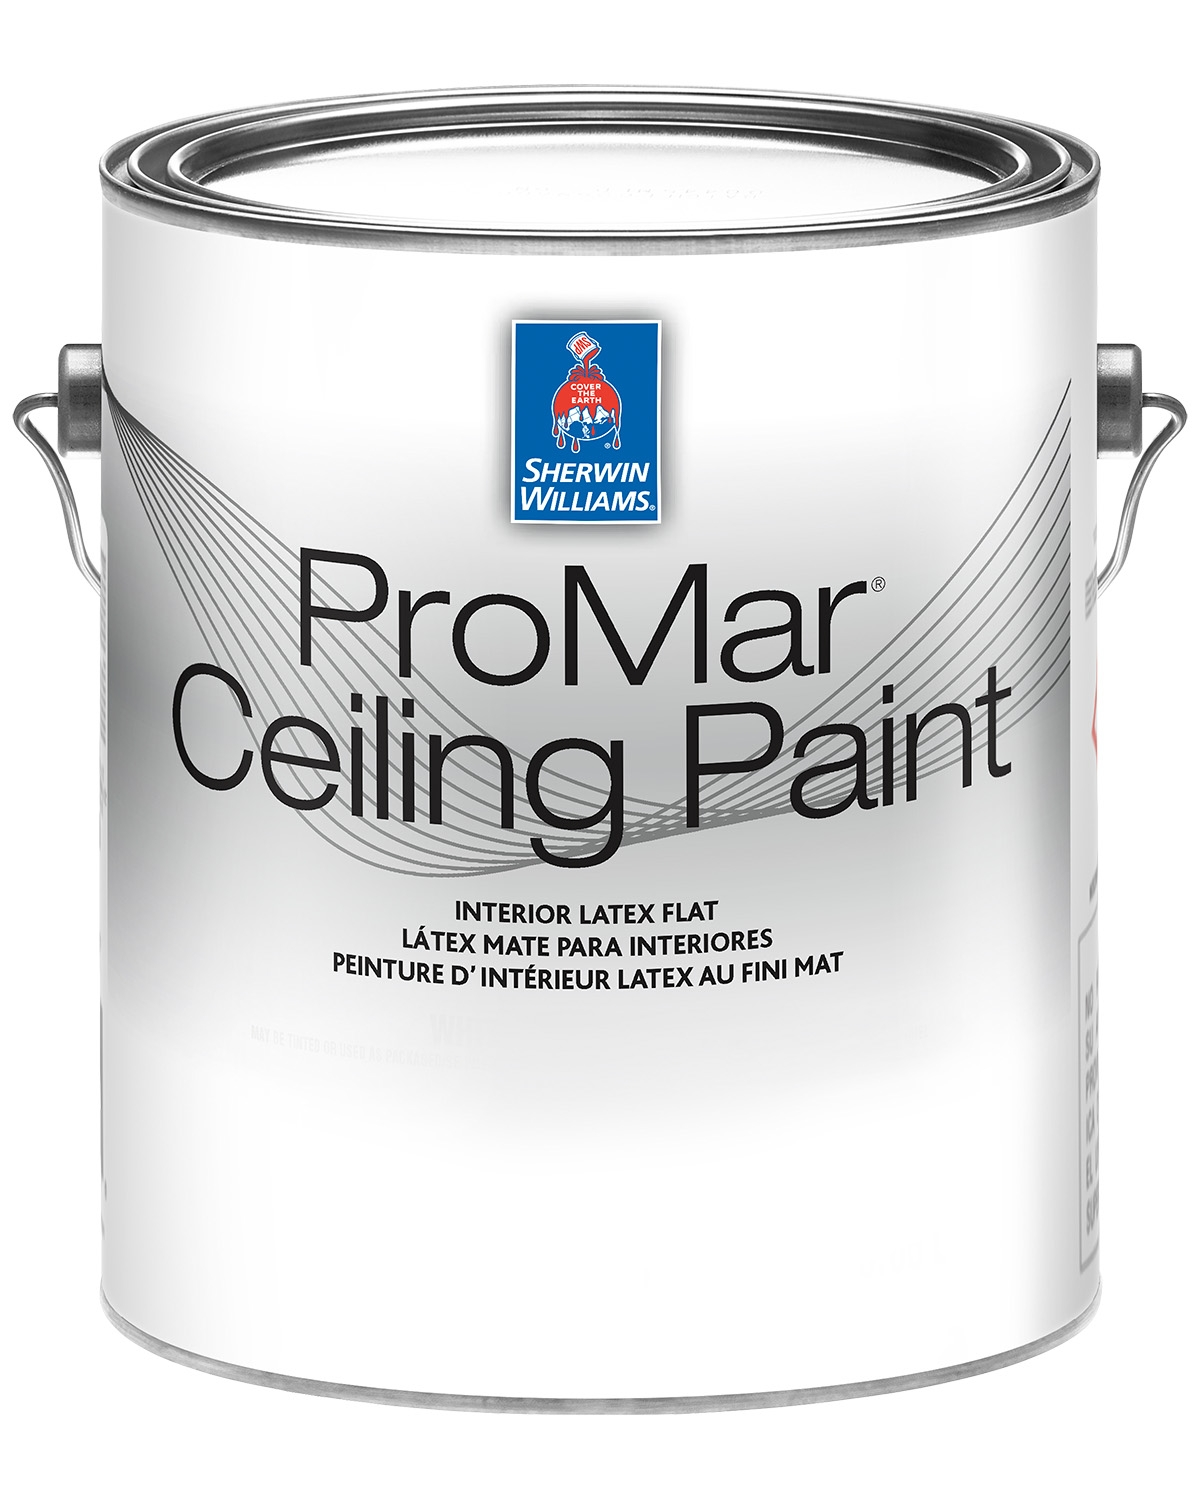 Interior Paint Cost: Promar Ceiling Paint Cost